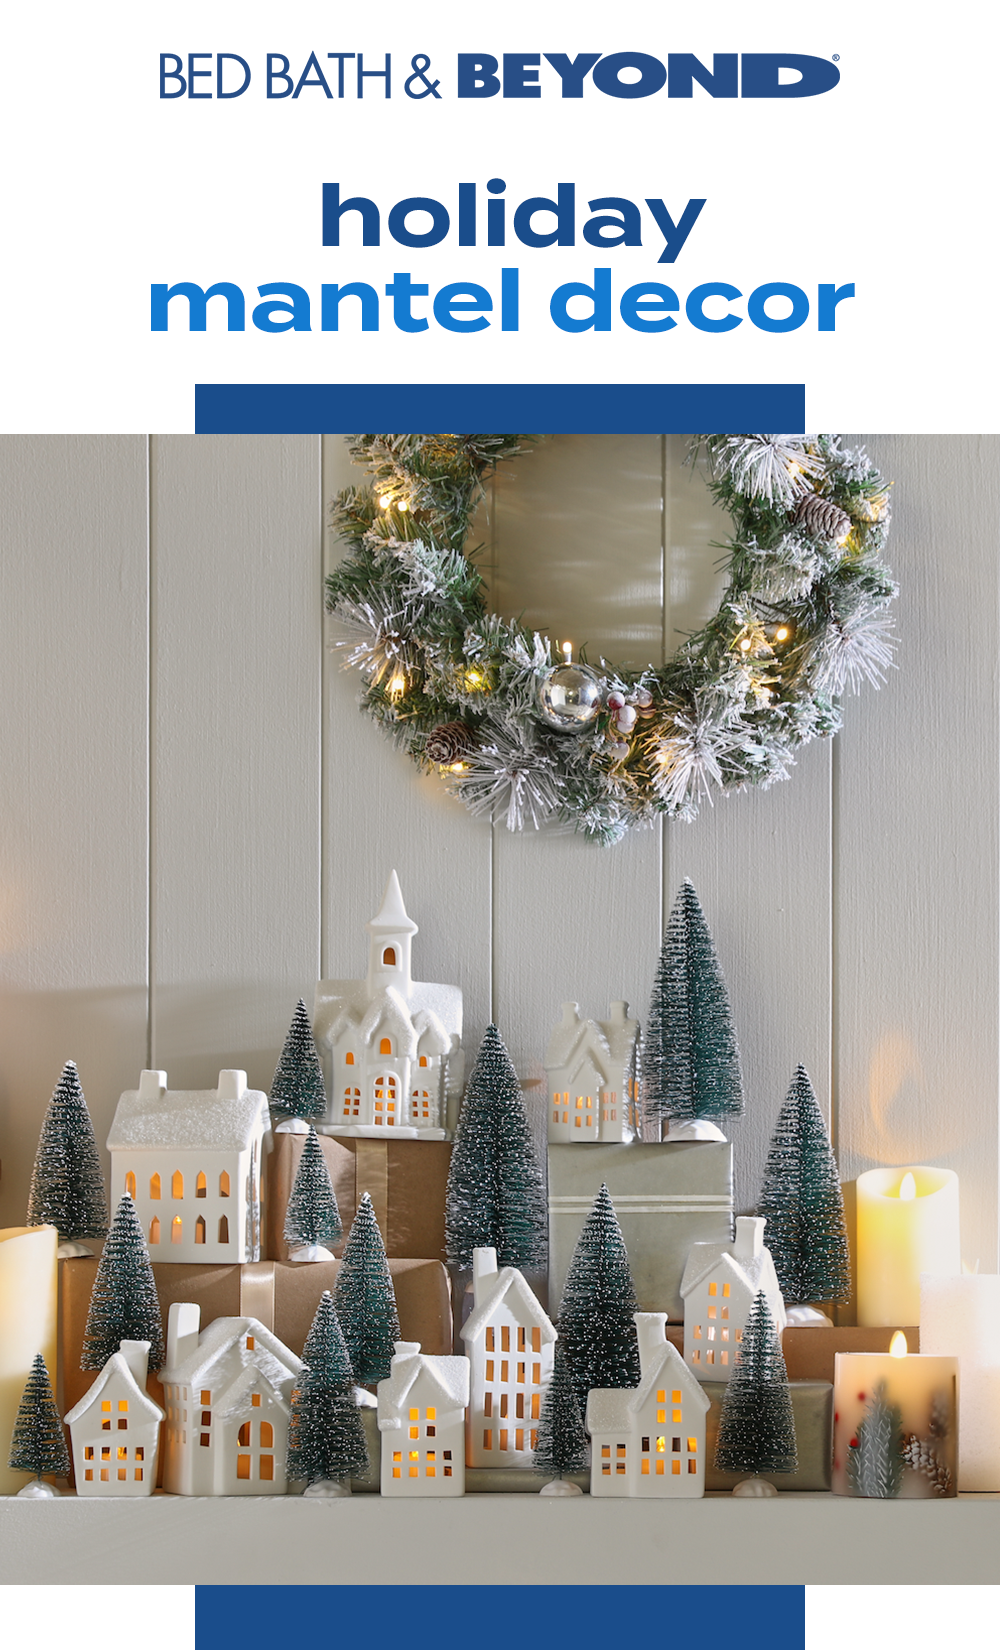 Add Some Serious Christmas Cheer To Your Home With Bed Bath Beyond We Ve Got A Who In 2020 Christmas Mantel Decorations Easy Christmas Decorations Christmas Wreaths